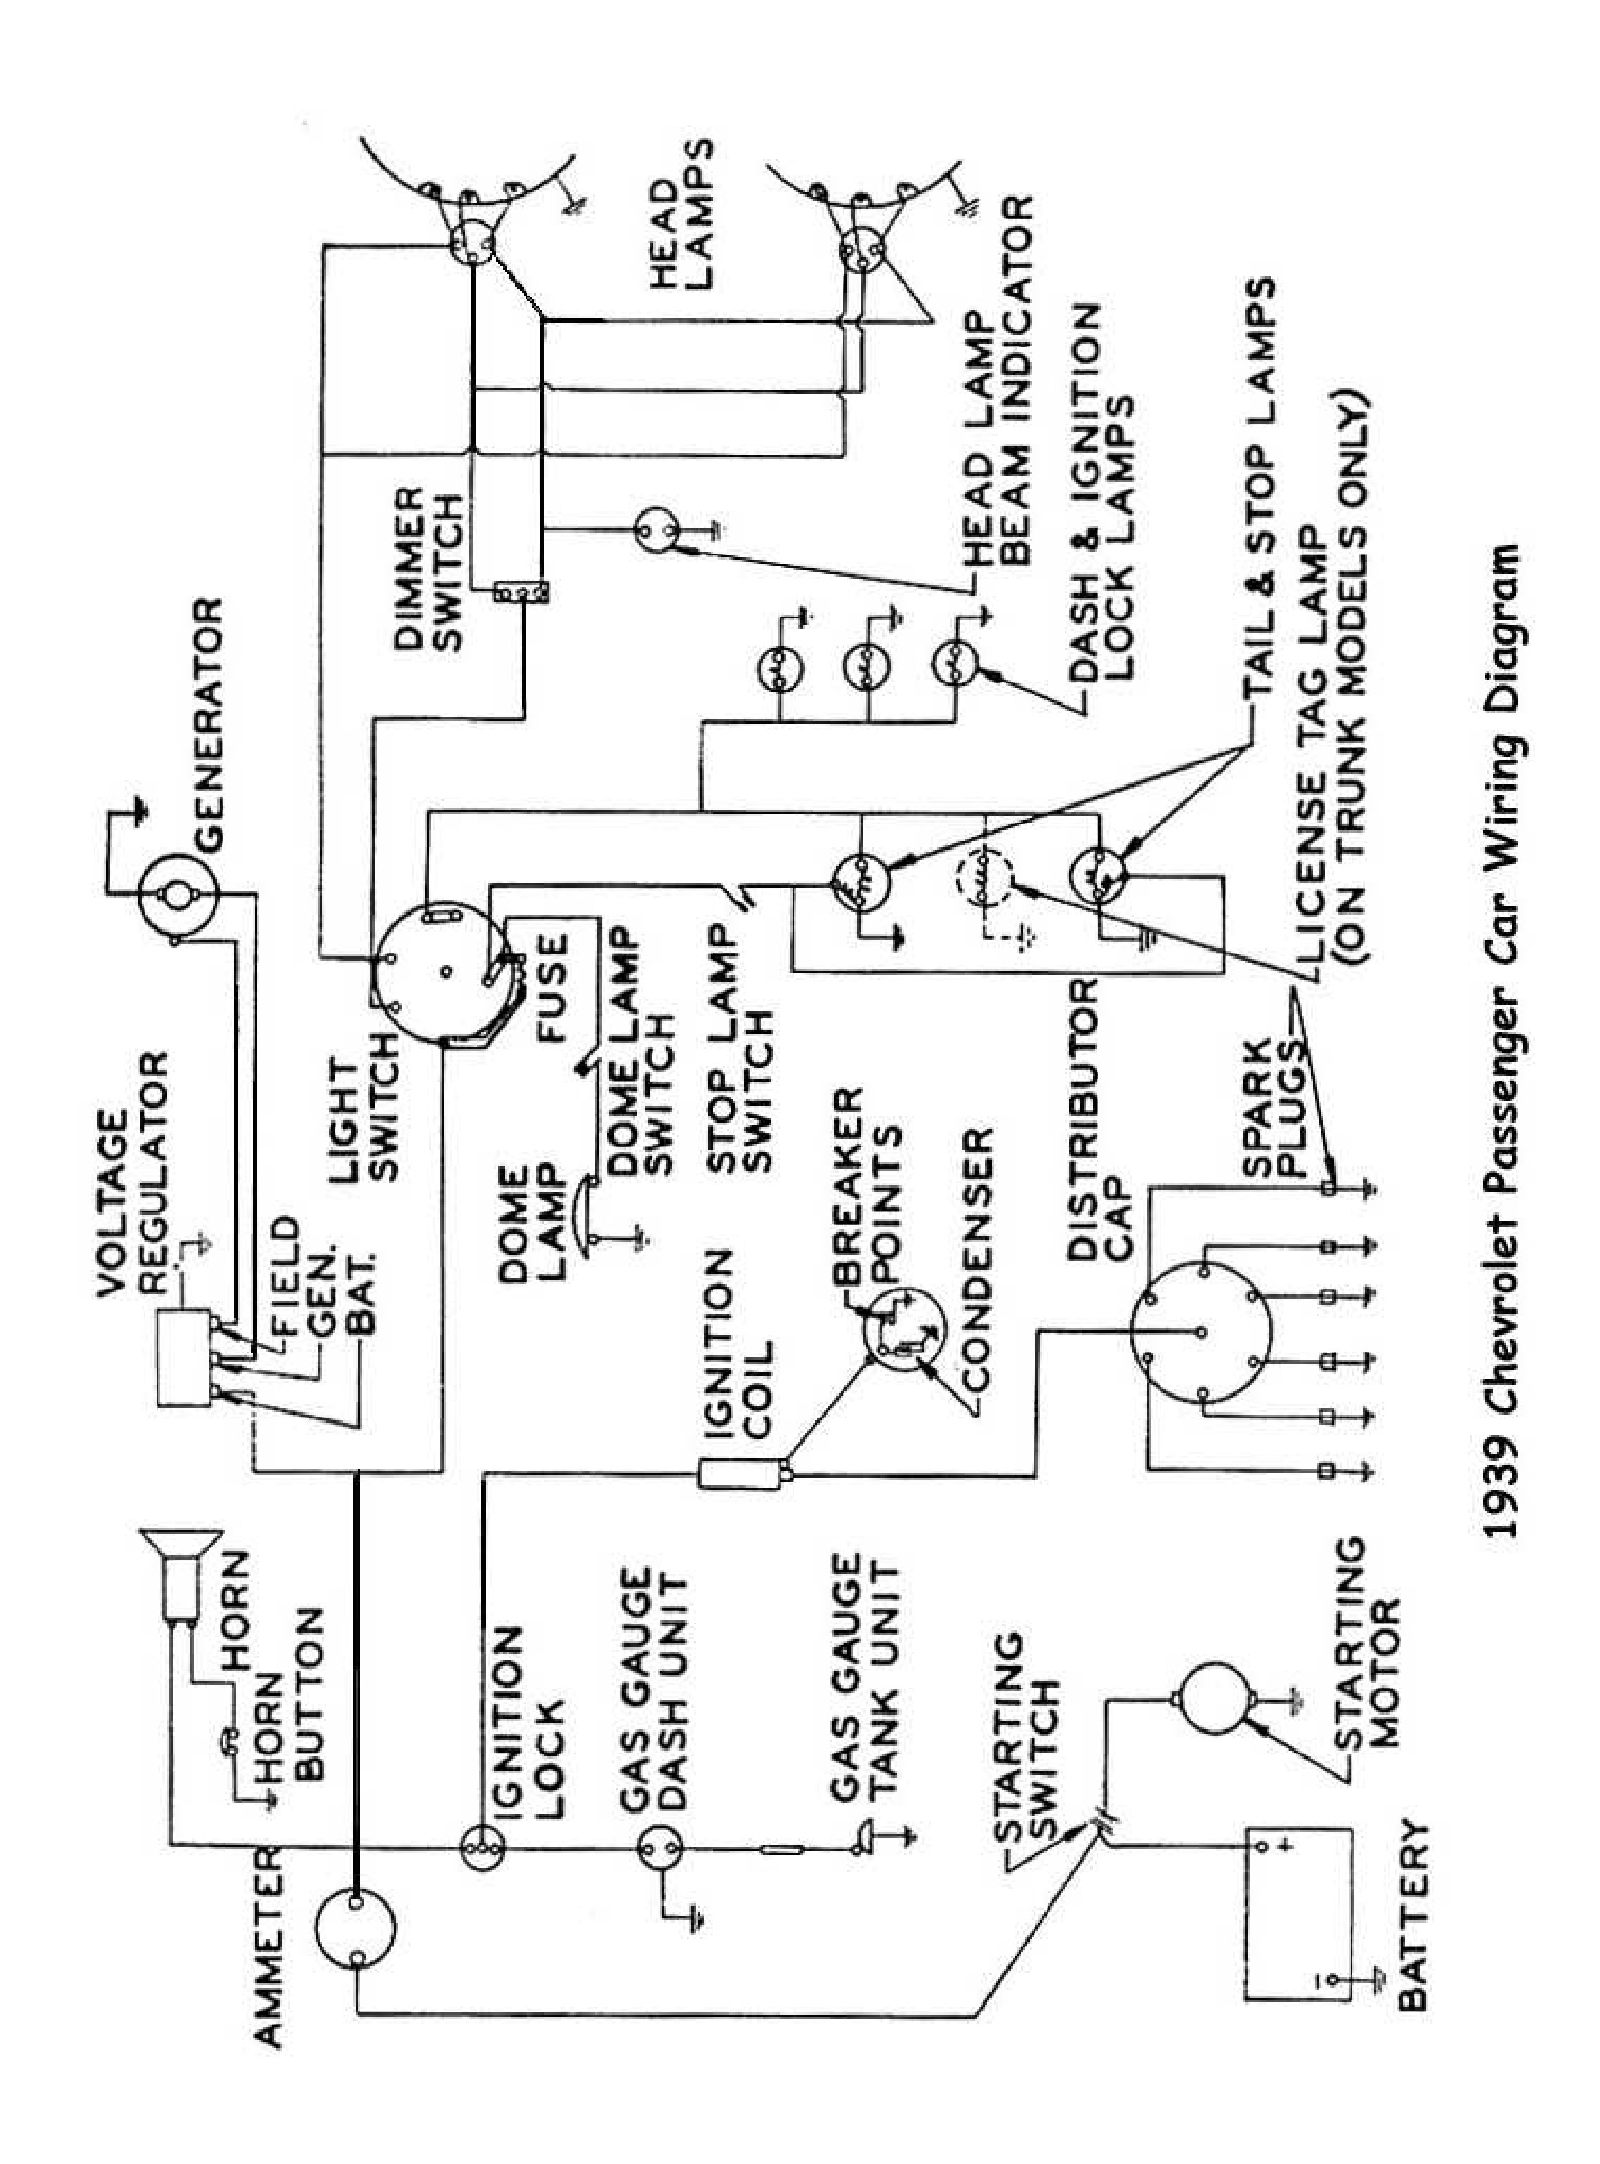 39car chevy wiring diagrams car ignition switch wiring diagram at gsmportal.co